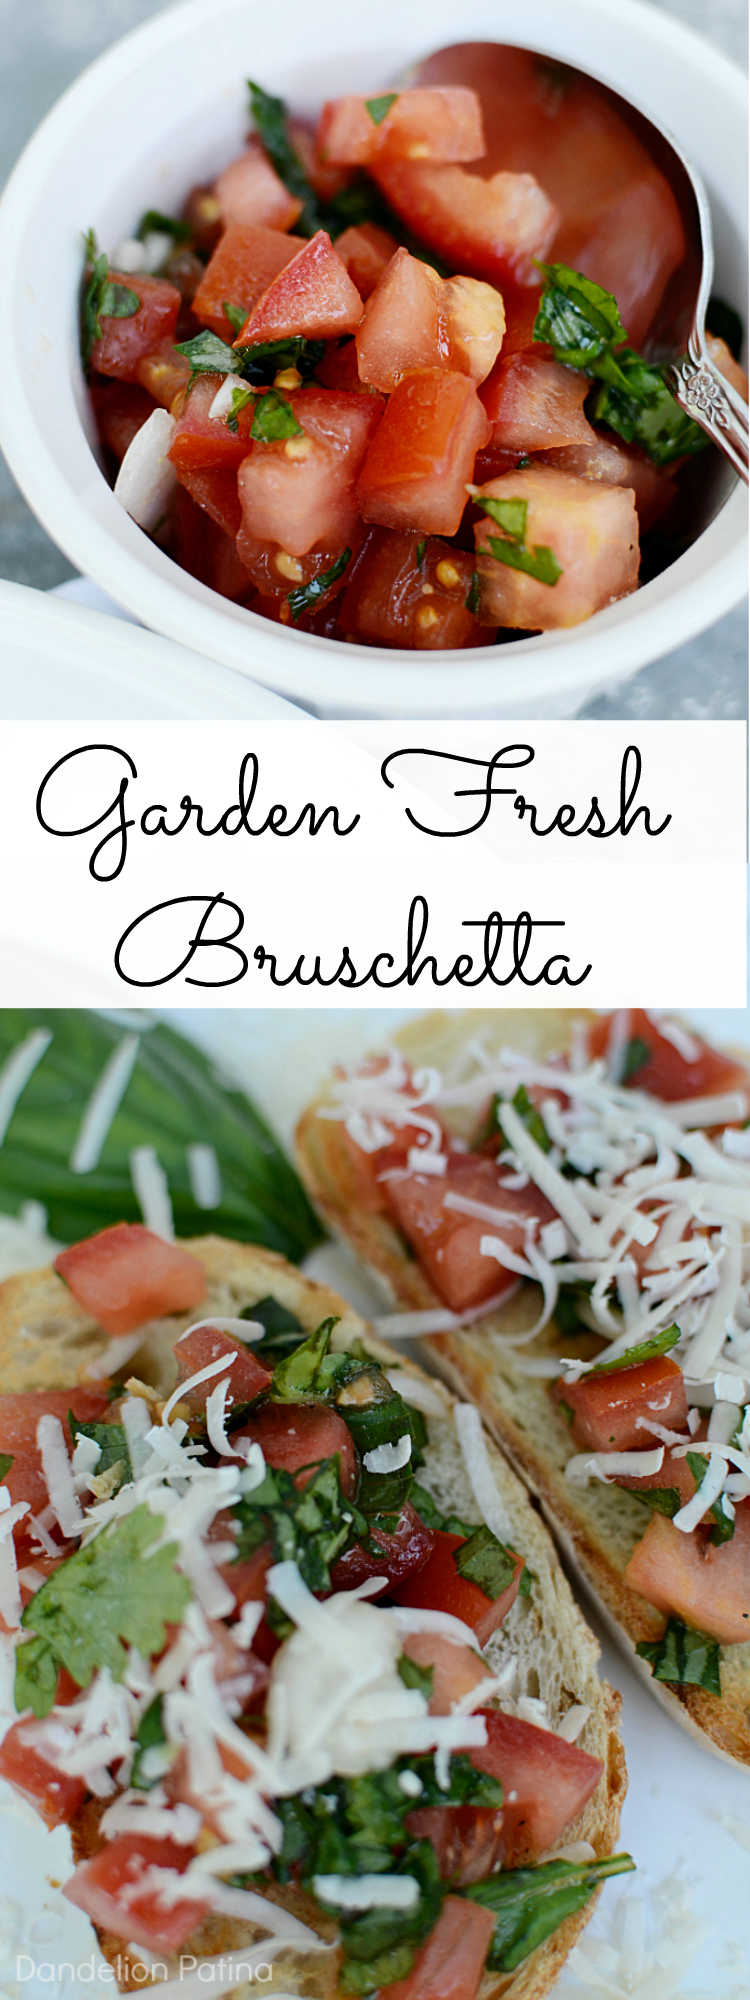 garden fresh bruschetta recipe